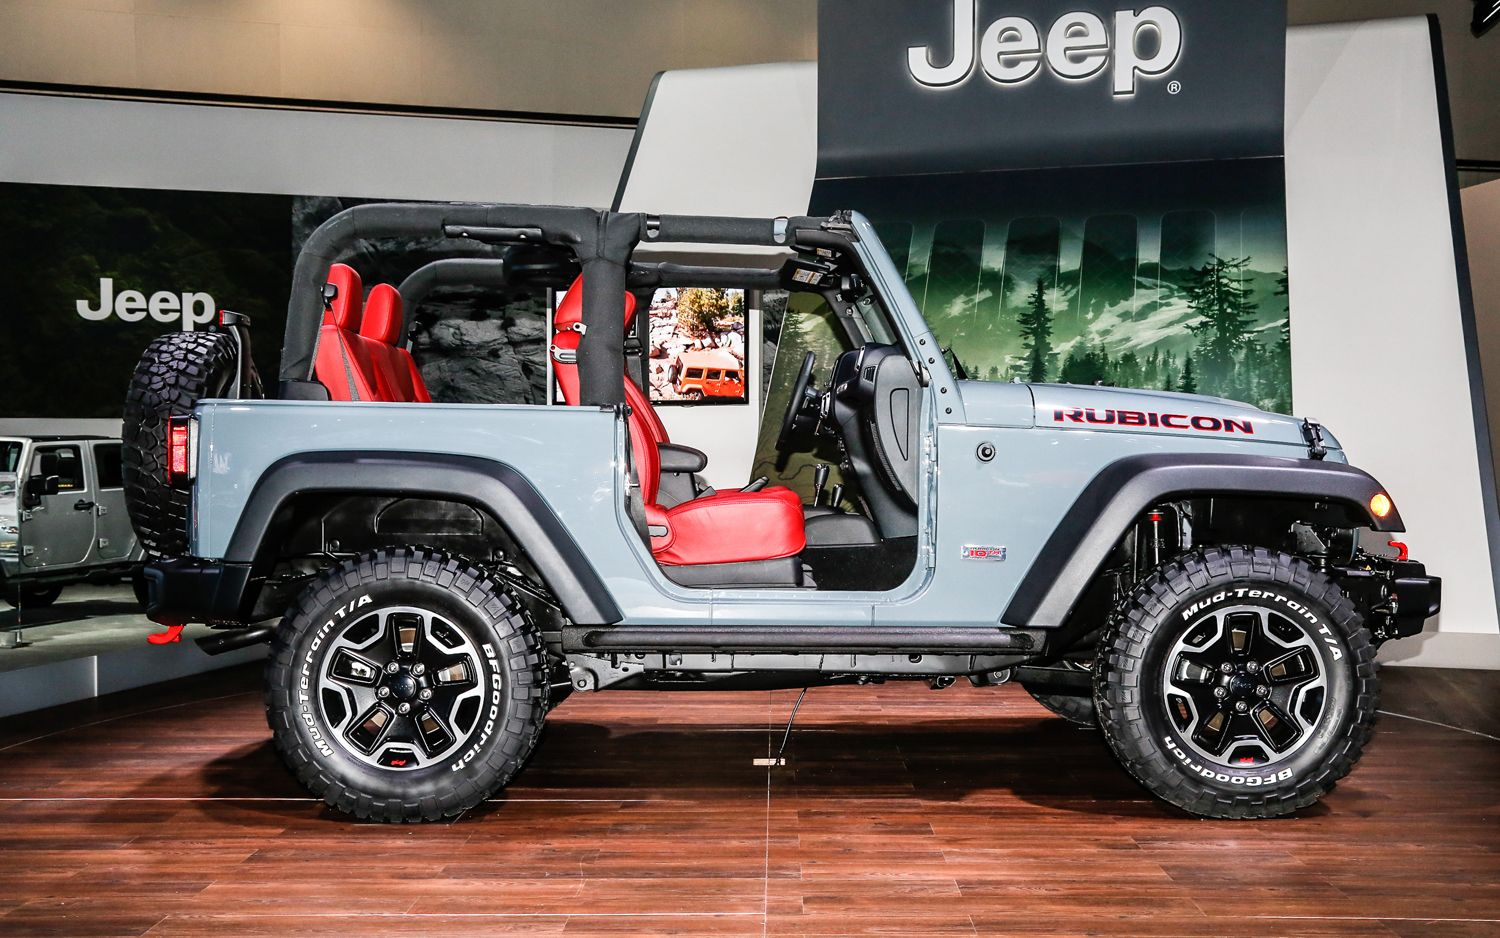 2 Door Jeep Without Doors Google Search Jeep Wrangler Rubicon 2013 Jeep Wrangler 2013 Jeep